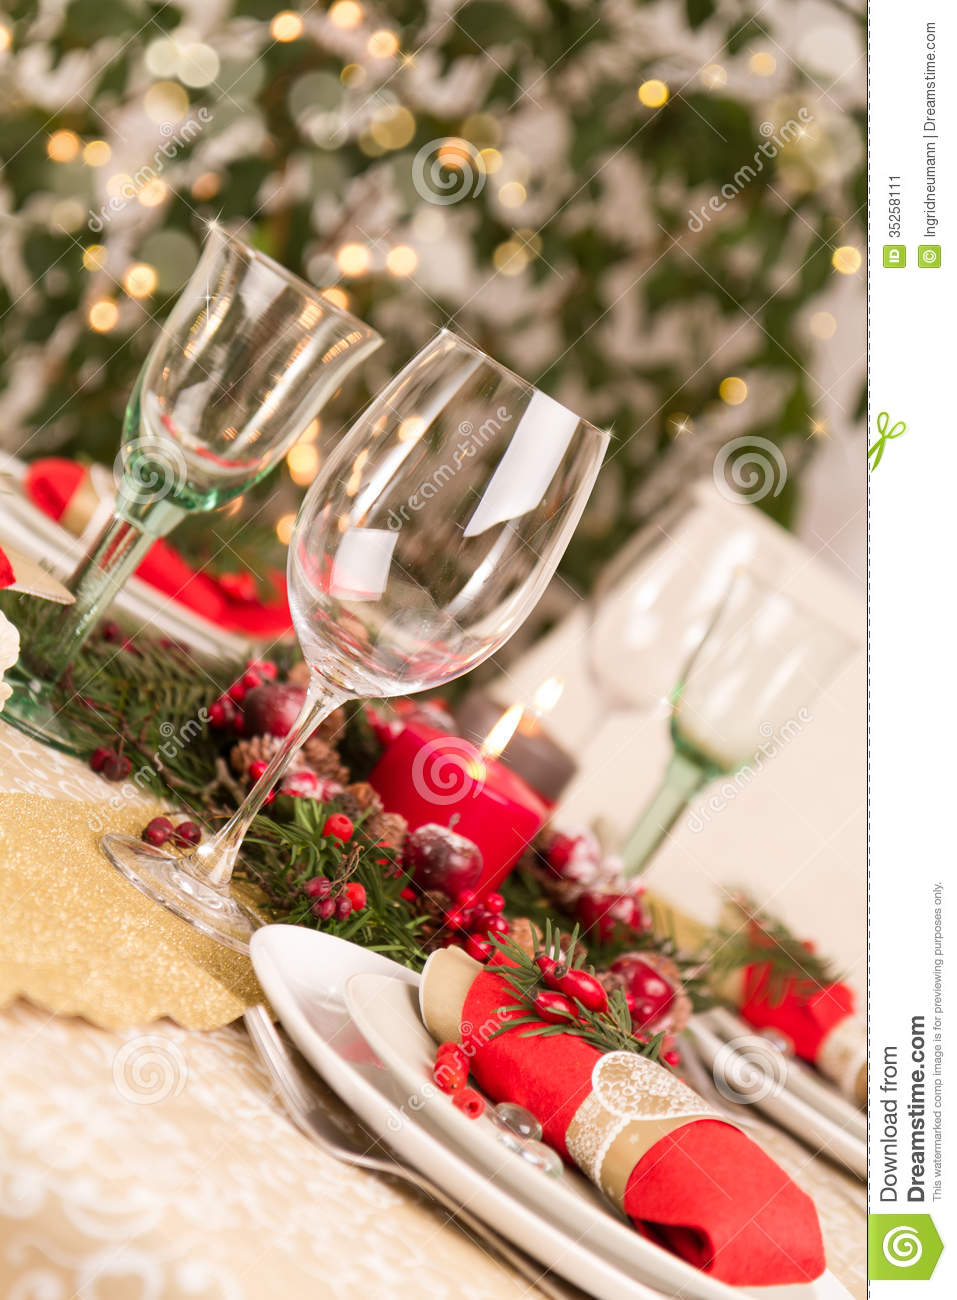 Dining Room Table Decoration Christmas Table Setting With Holiday Decorations Stock